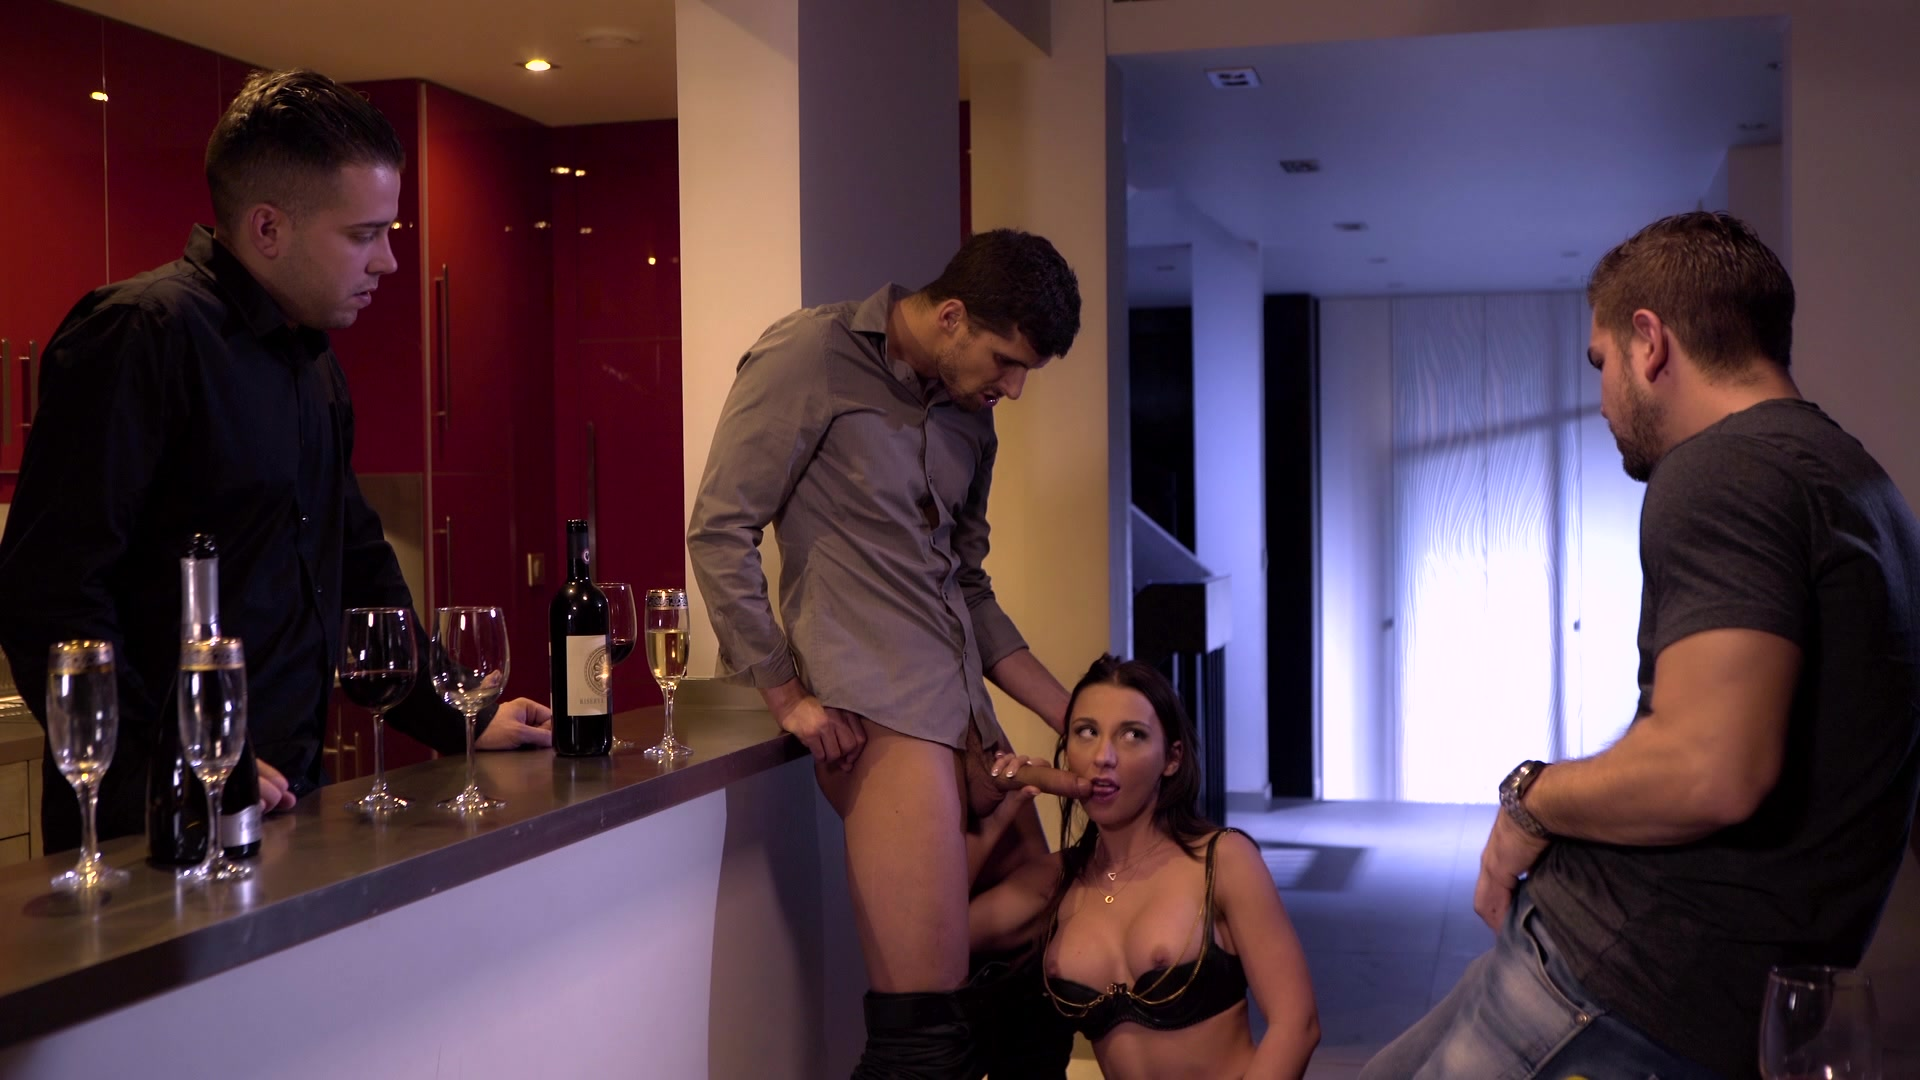 Scene with Julie Skyhigh - image 8 out of 20